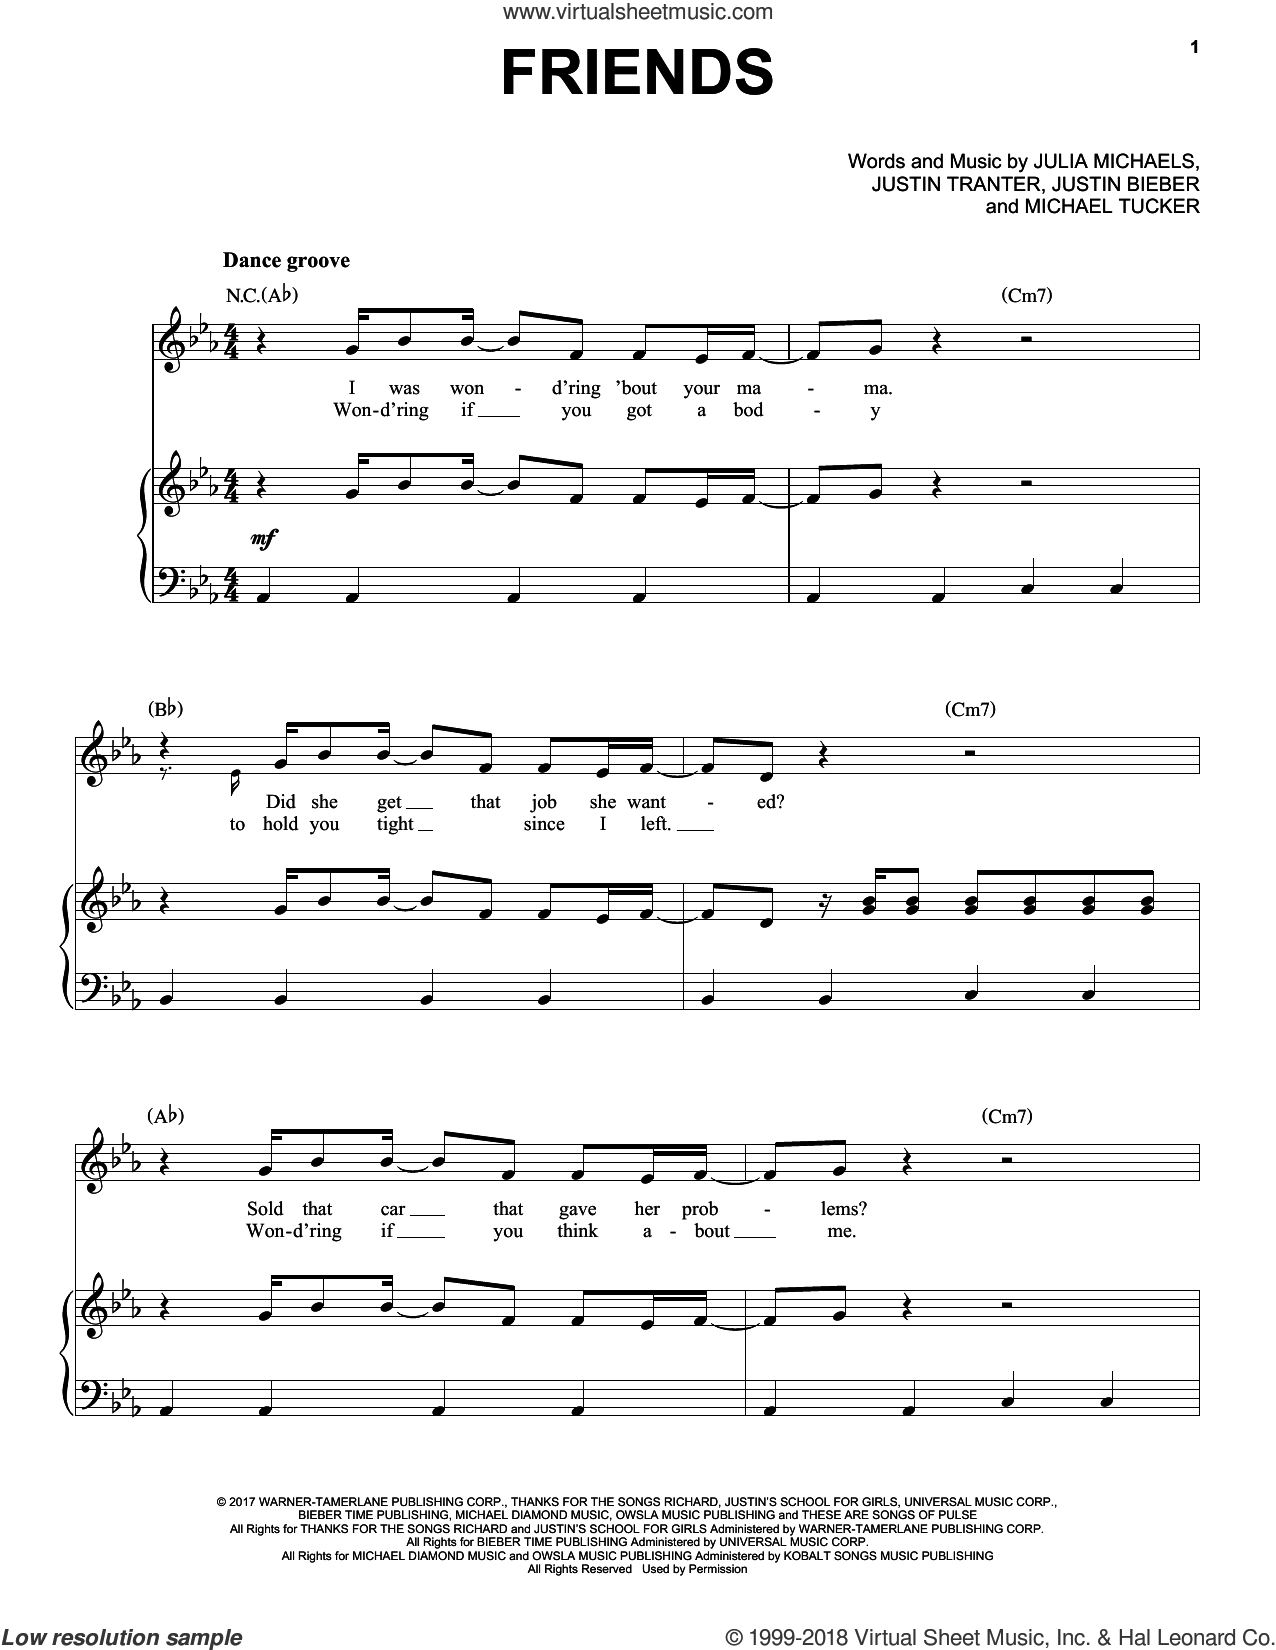 Friends sheet music for voice, piano or guitar by Justin Bieber feat. BloodPop, Julia Michaels, Justin Bieber, Justin Tranter and Michael Tucker, intermediate skill level